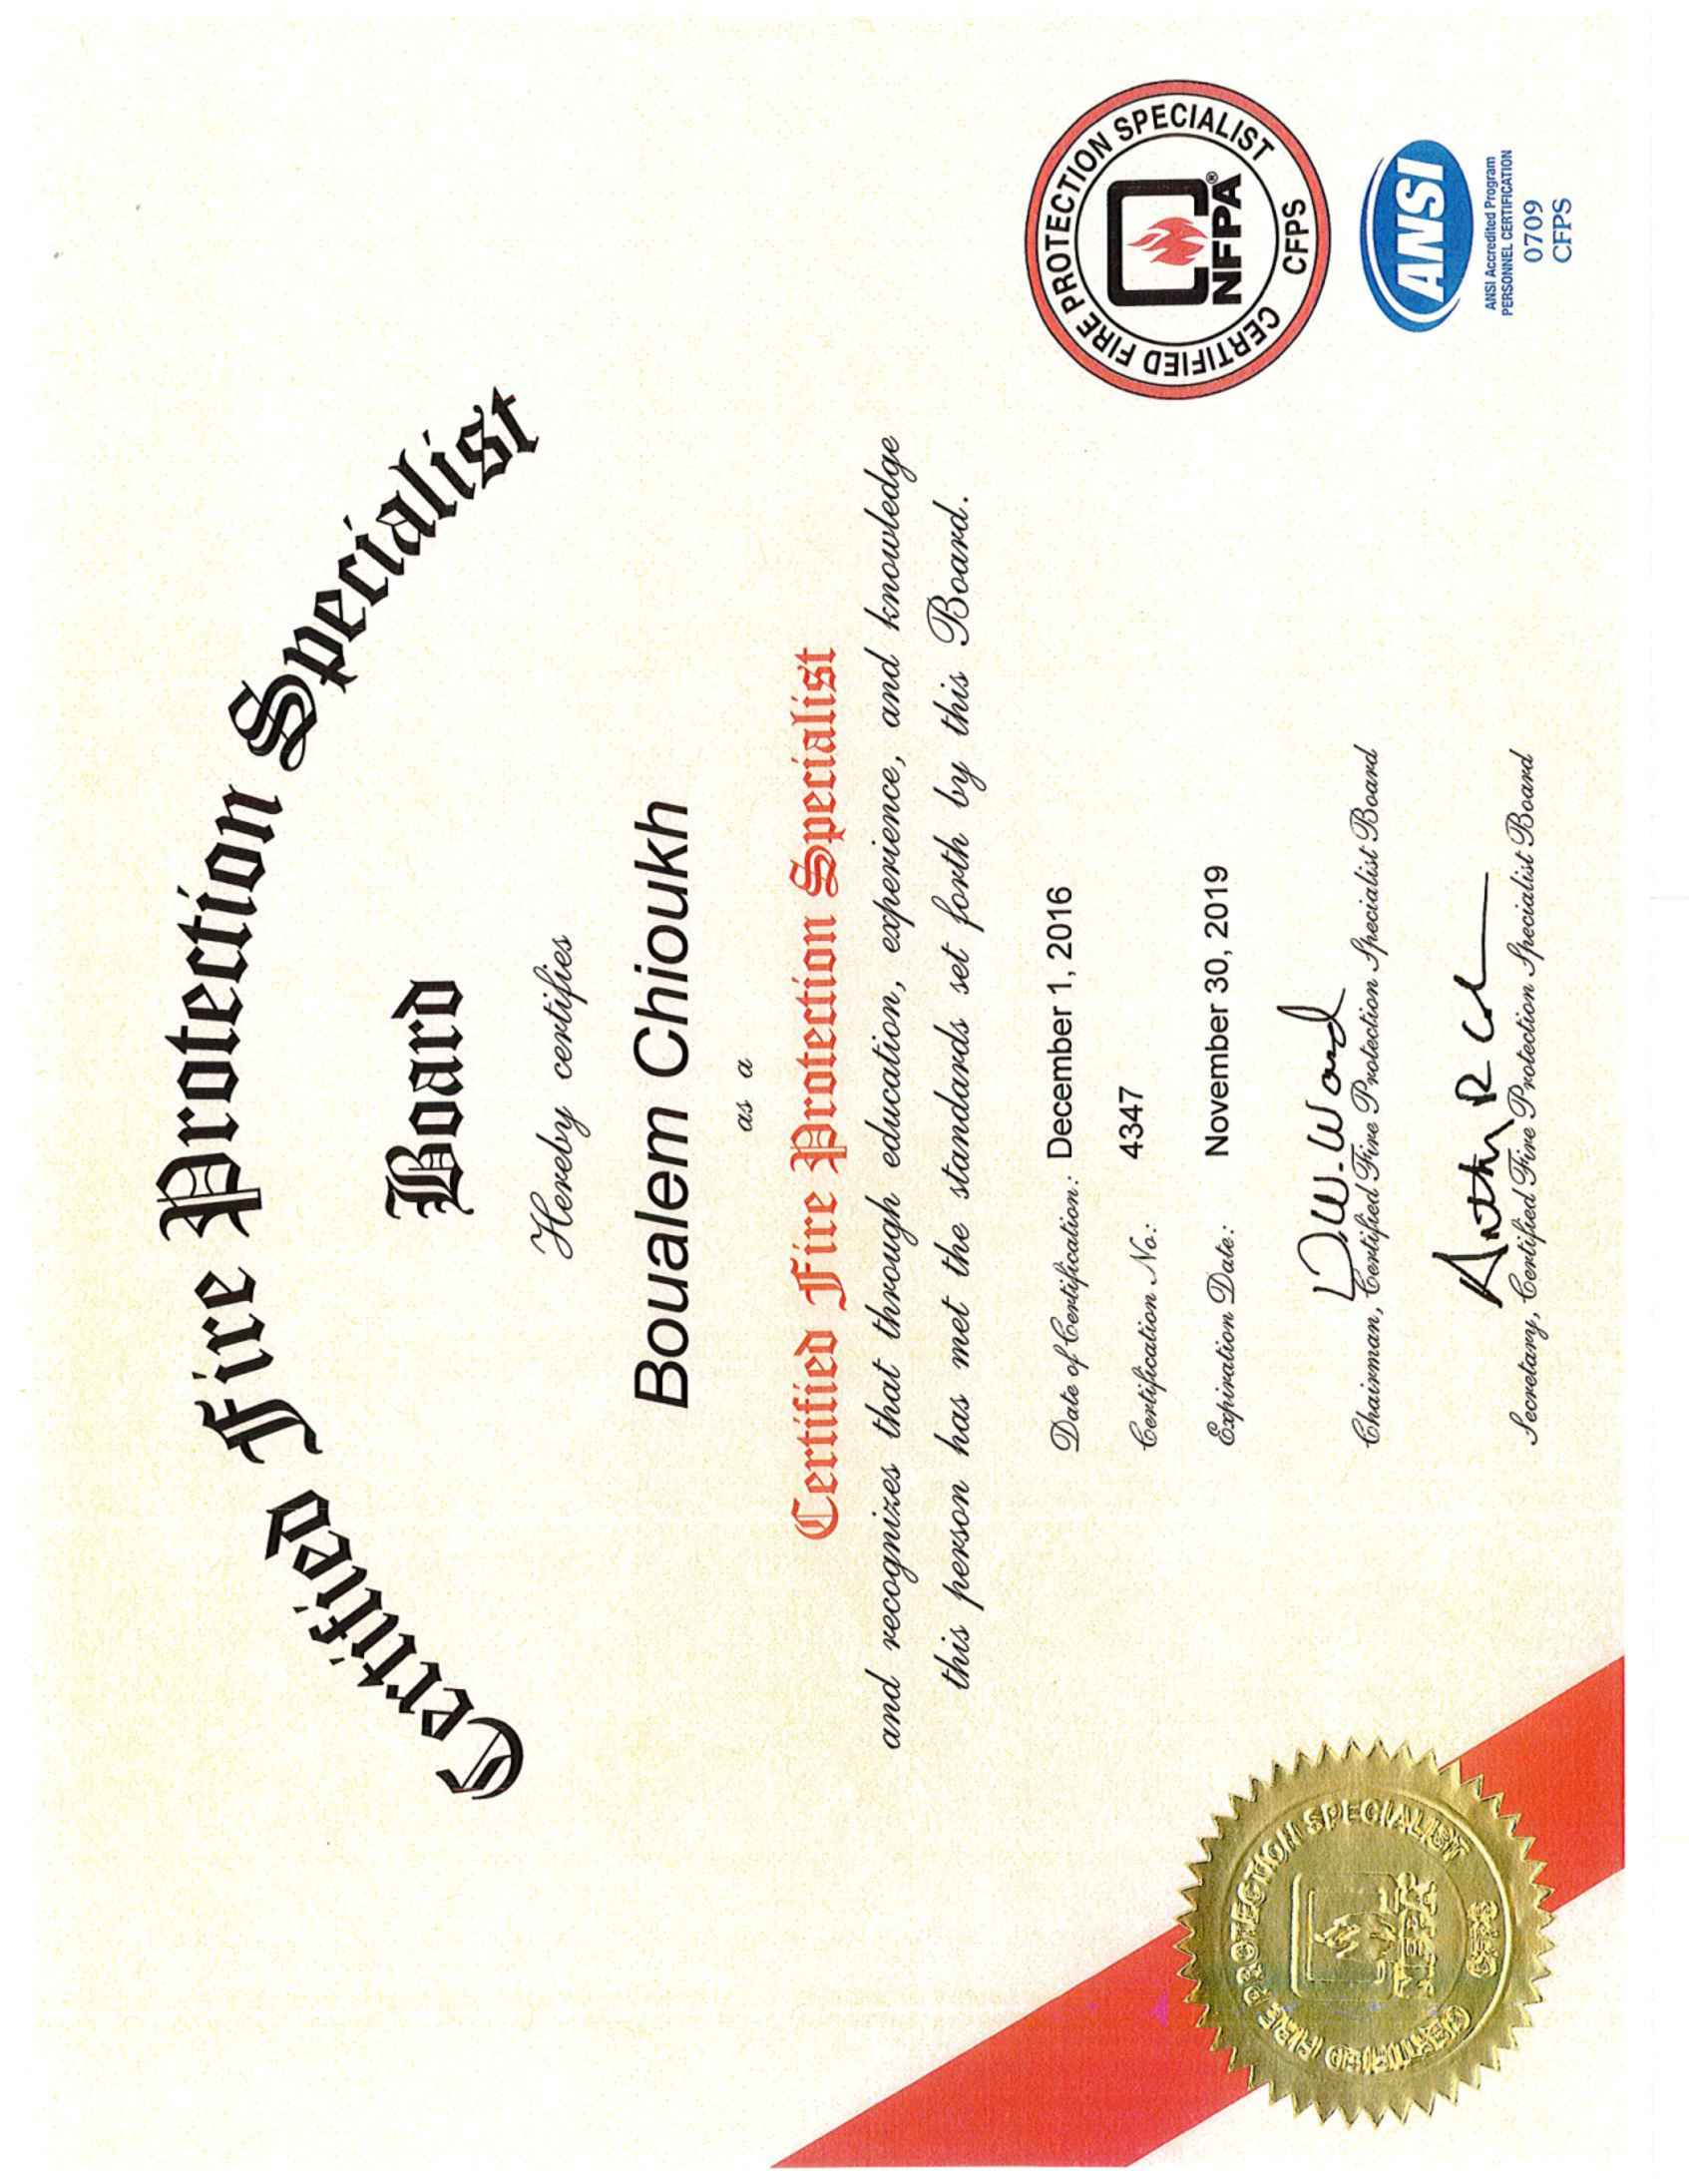 Boualem chioukh bayt nfpa certified fire protection specialist certificate xflitez Image collections